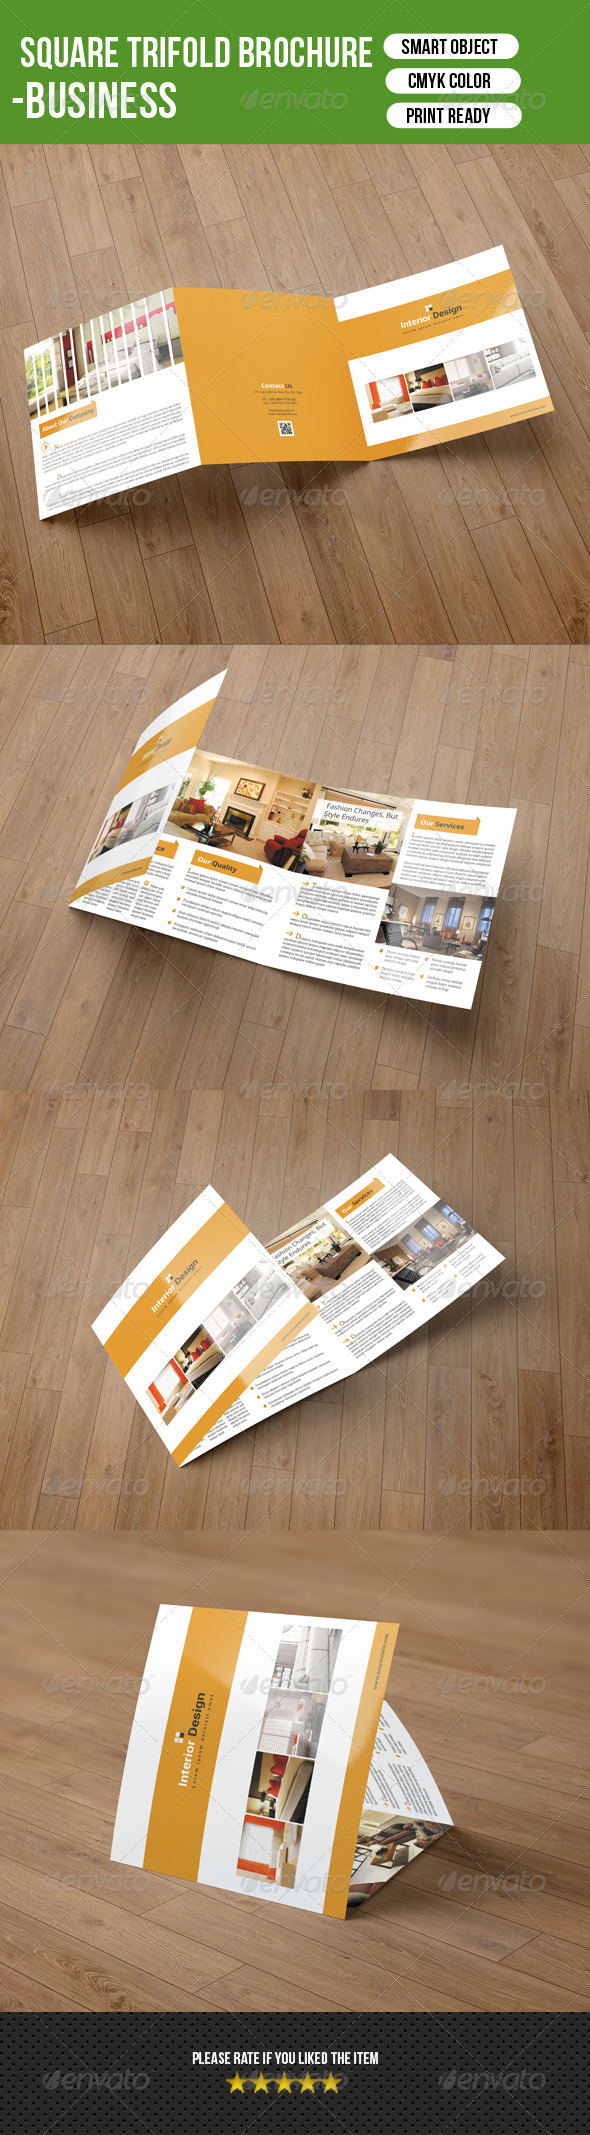 GraphicRiver Square Trifold Brochure-Interior Design 7704958